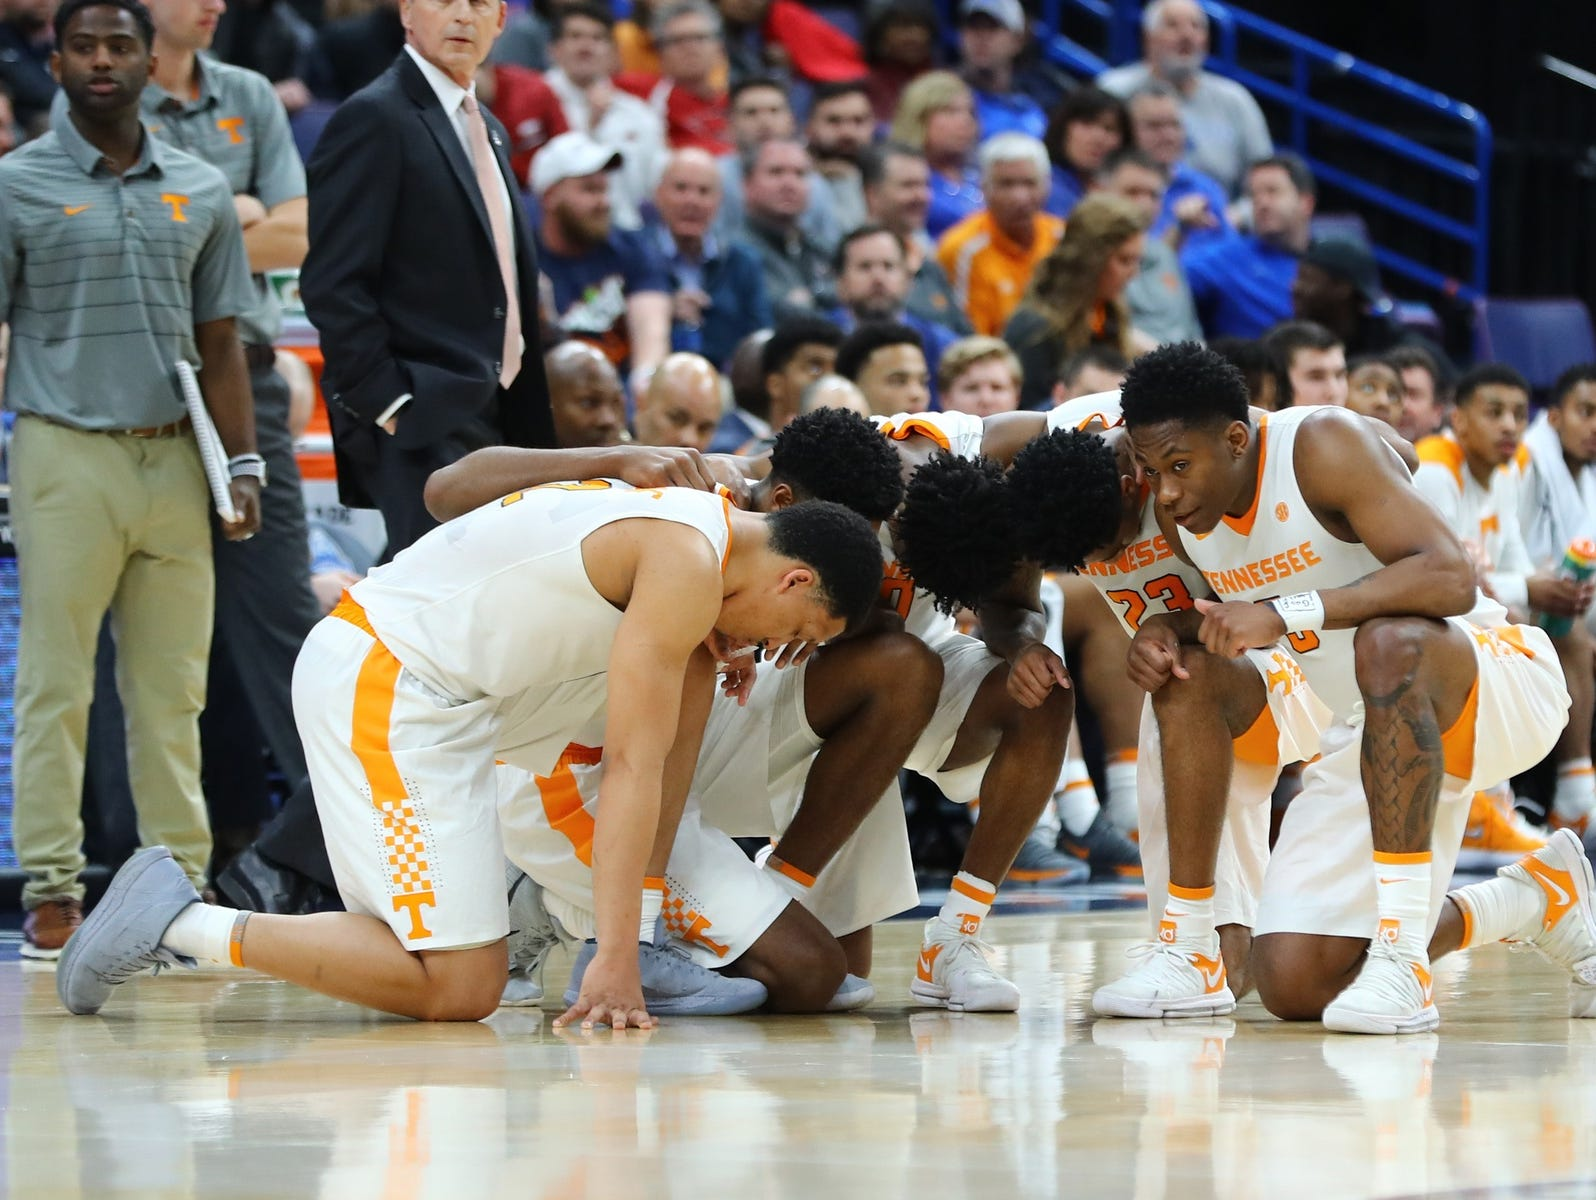 The Tennessee Volunteers take a knee as trainers examine injured Mississippi State Bulldogs player Nick Weatherspoon (not pictured) during the second half of the quarterfinals in the SEC Conference Tournament at Scottrade Center. Mandatory Credit: Billy Hurst-USA TODAY Sports